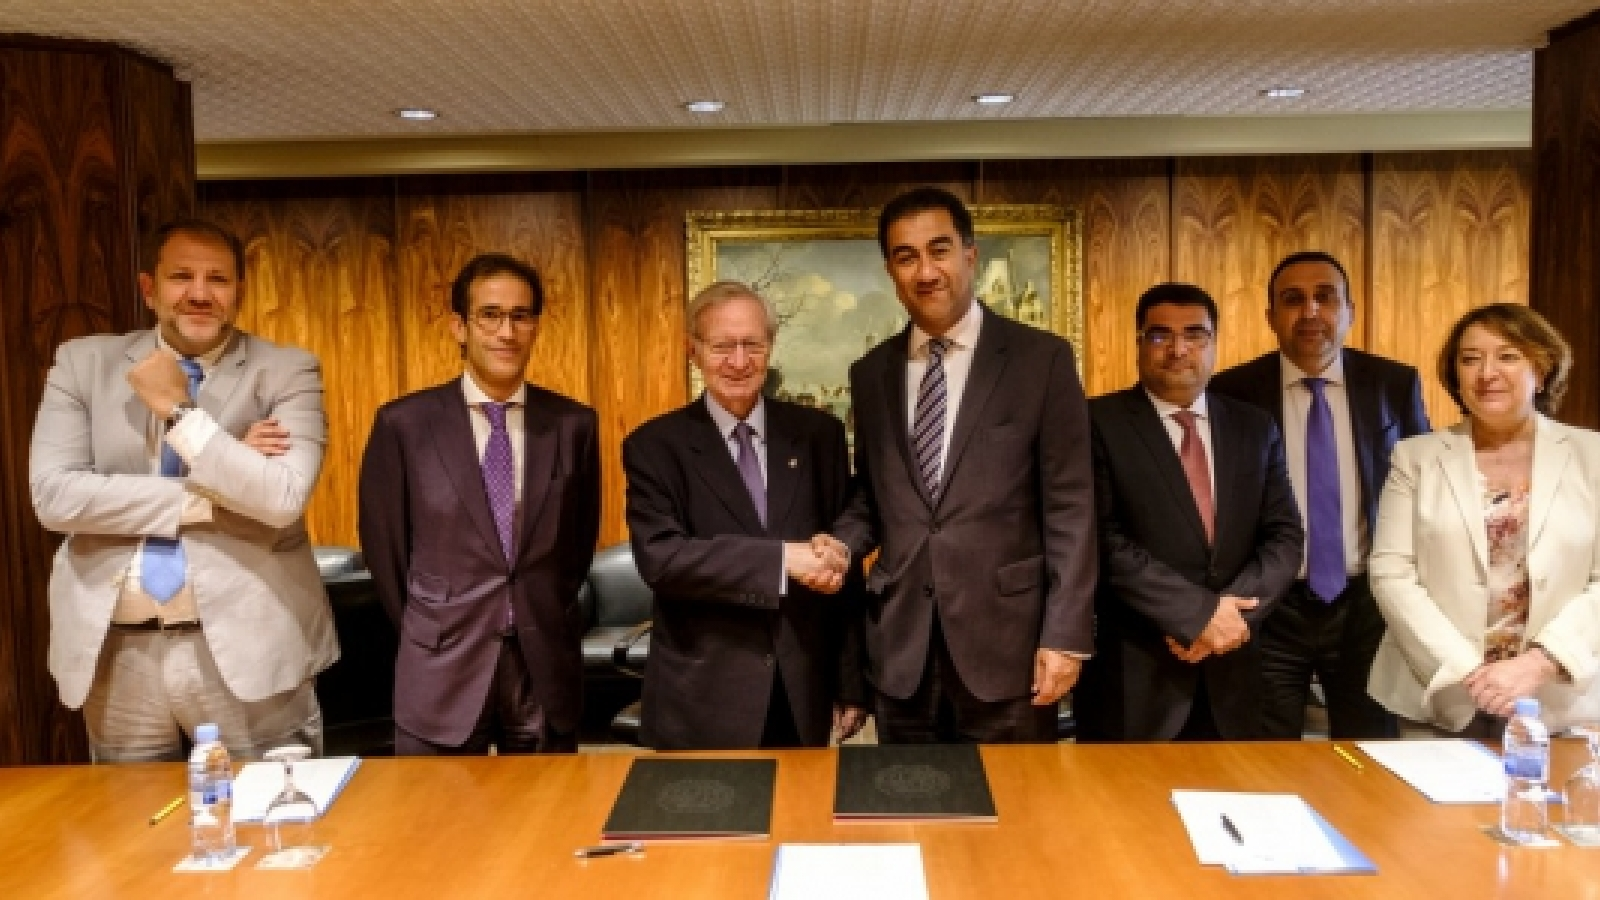 MedaWeek Barcelona 2017: ASCAME and UfM join forces to advance economic development in the Mediterranean